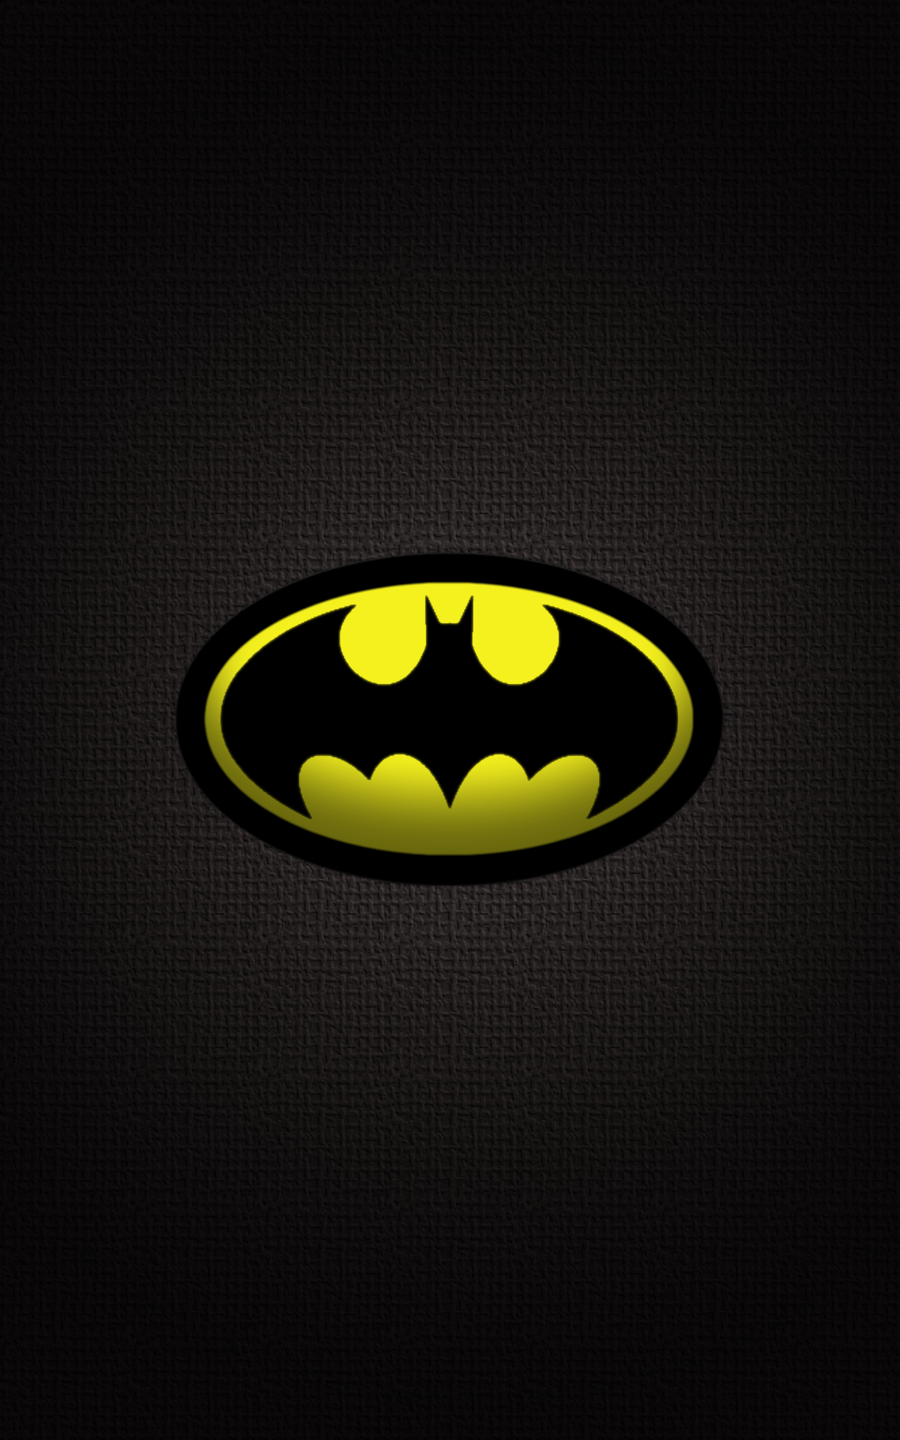 Best iPhone Wallpapers Backgrounds in HD Quality Batman